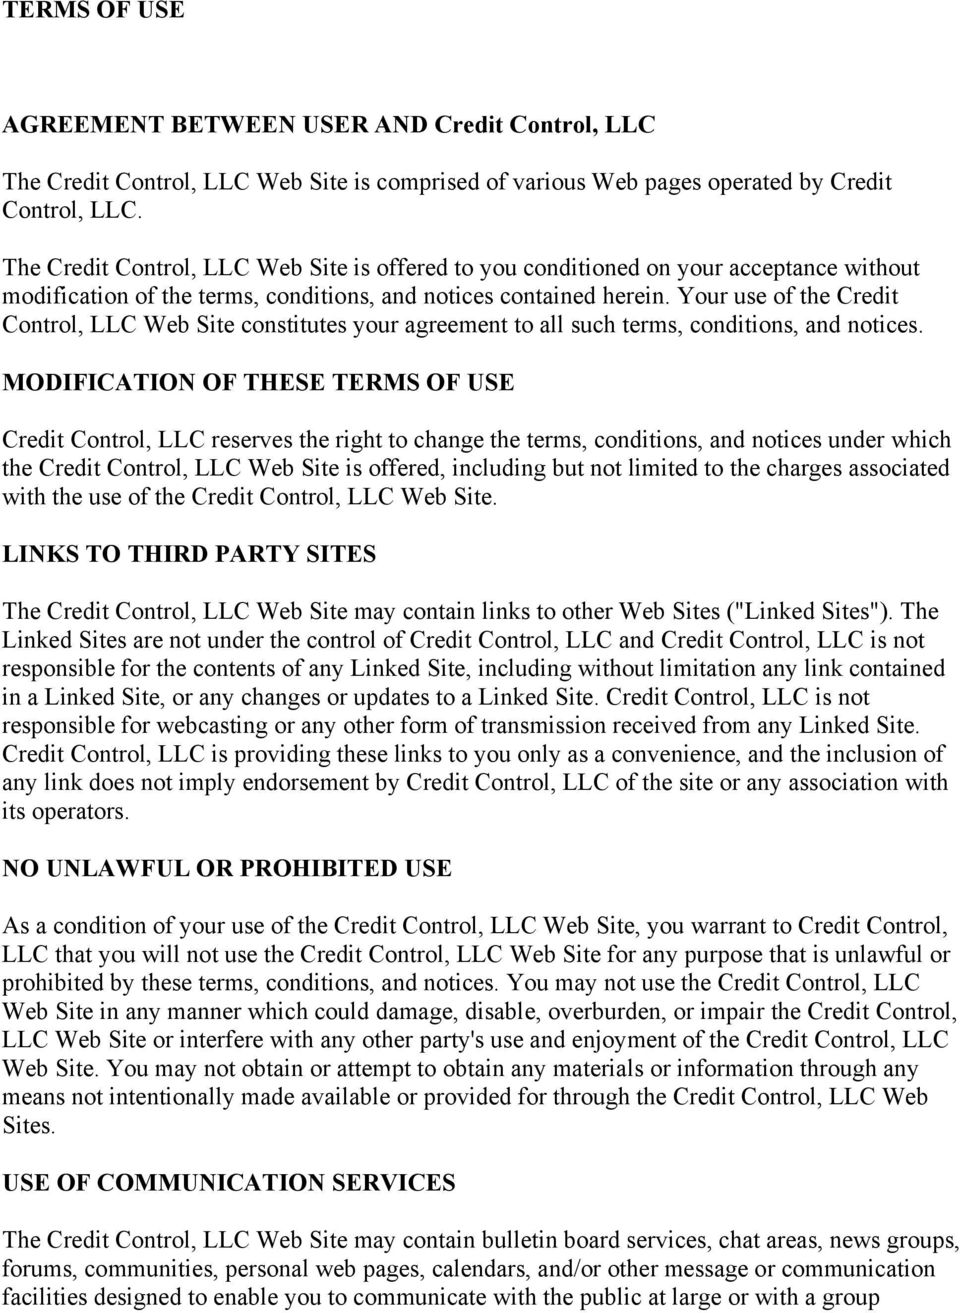 Your use of the Credit Control, LLC Web Site constitutes your agreement to all such terms, conditions, and notices.